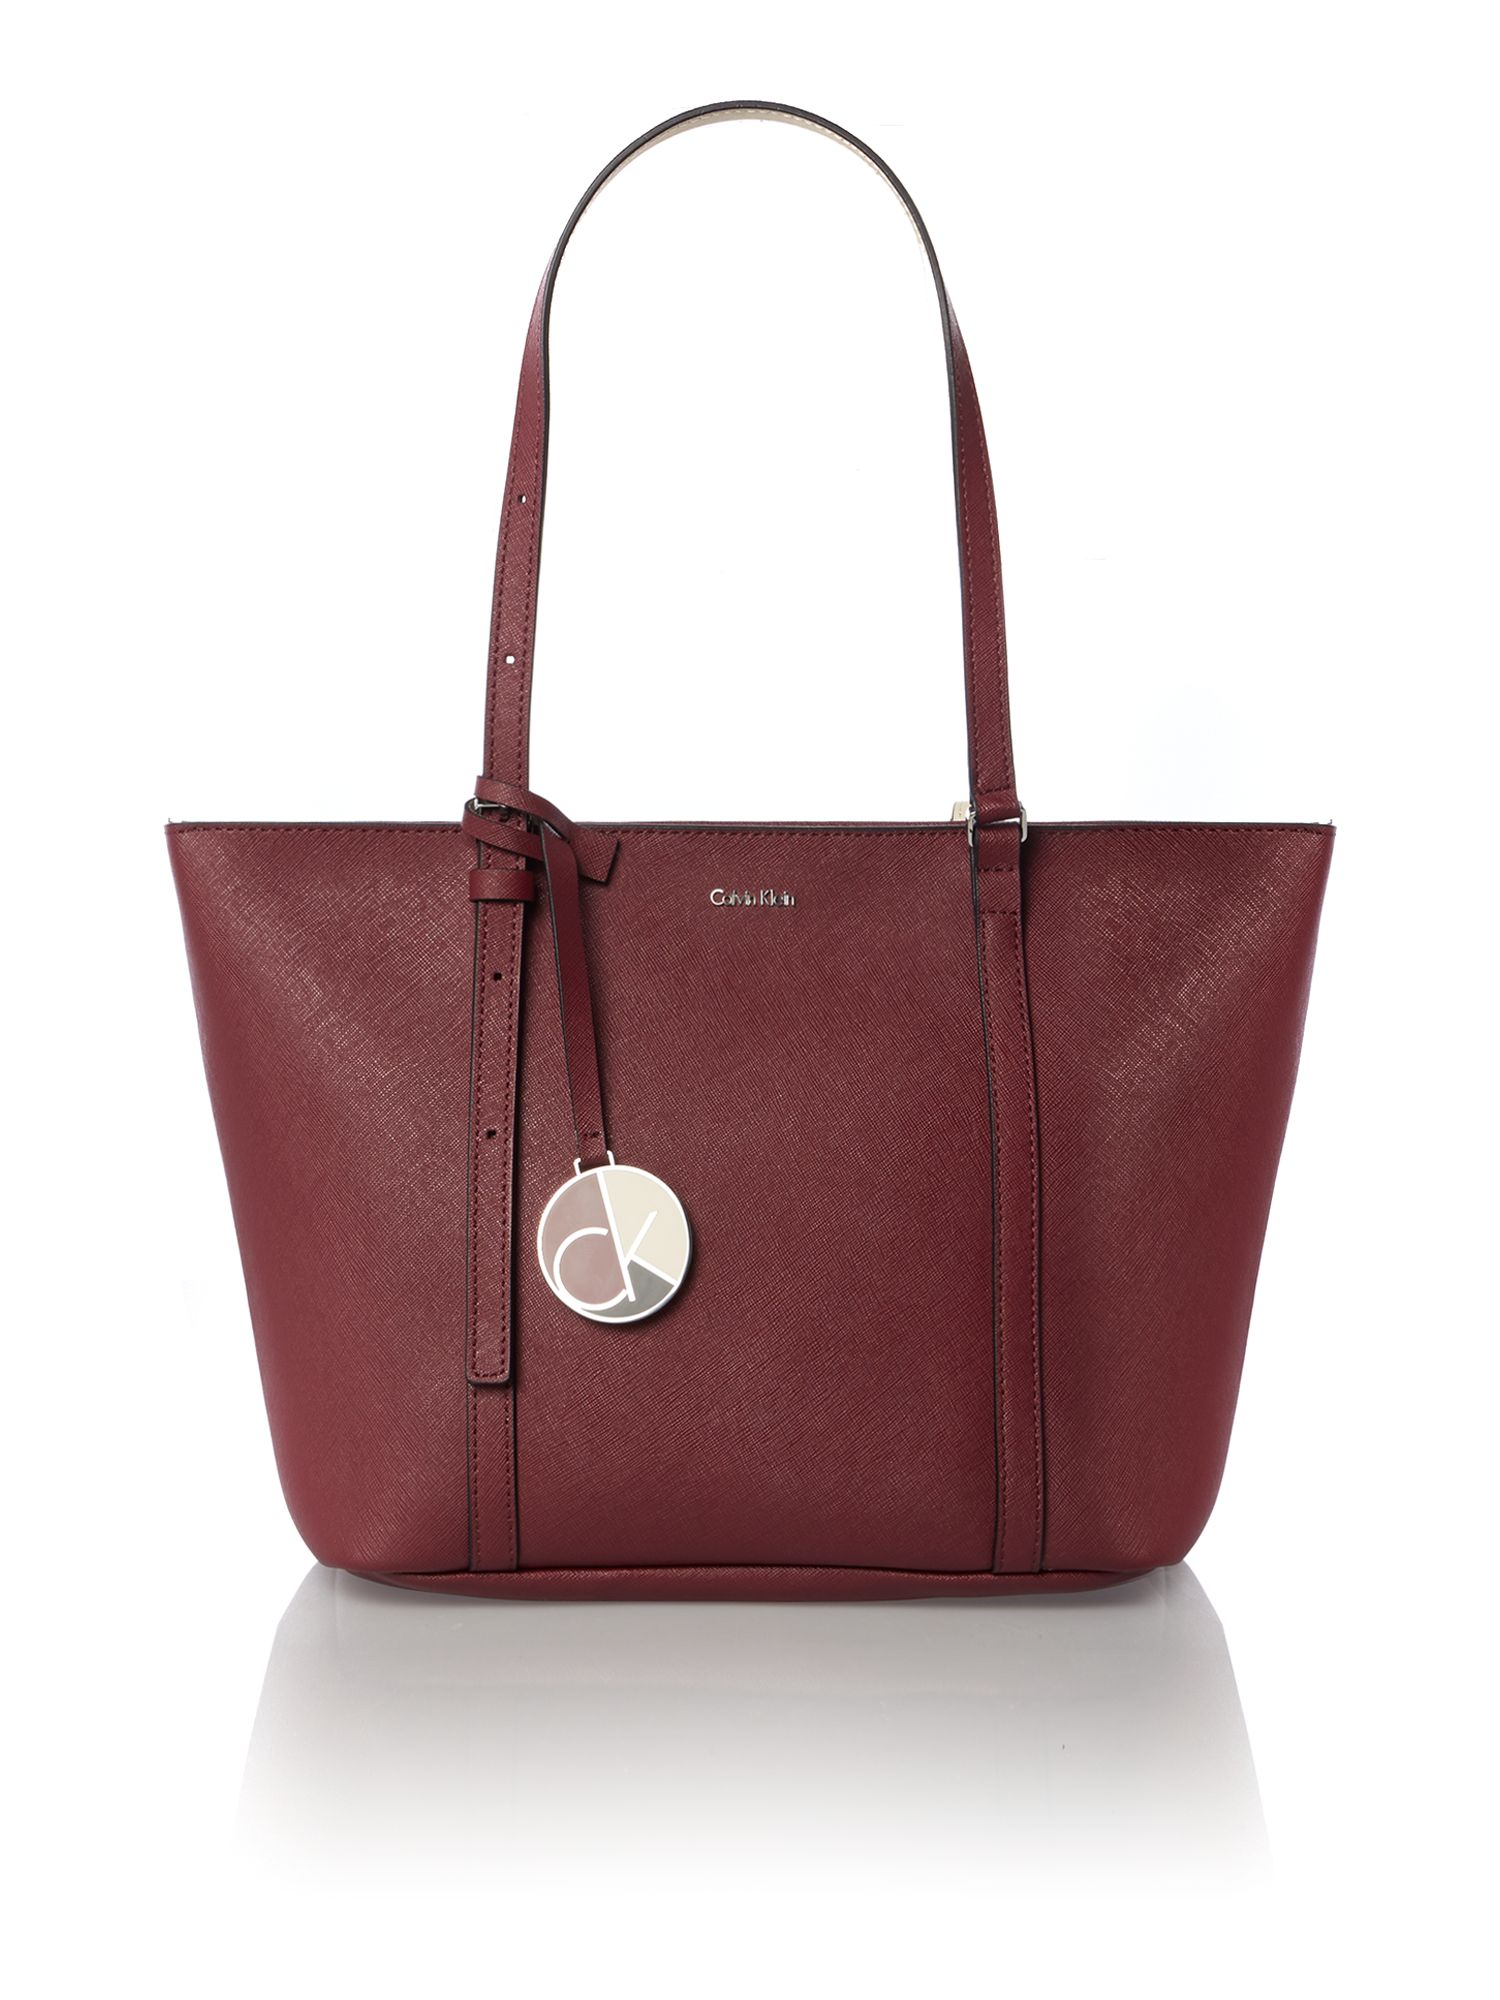 Sofie burgundy medium tote bag